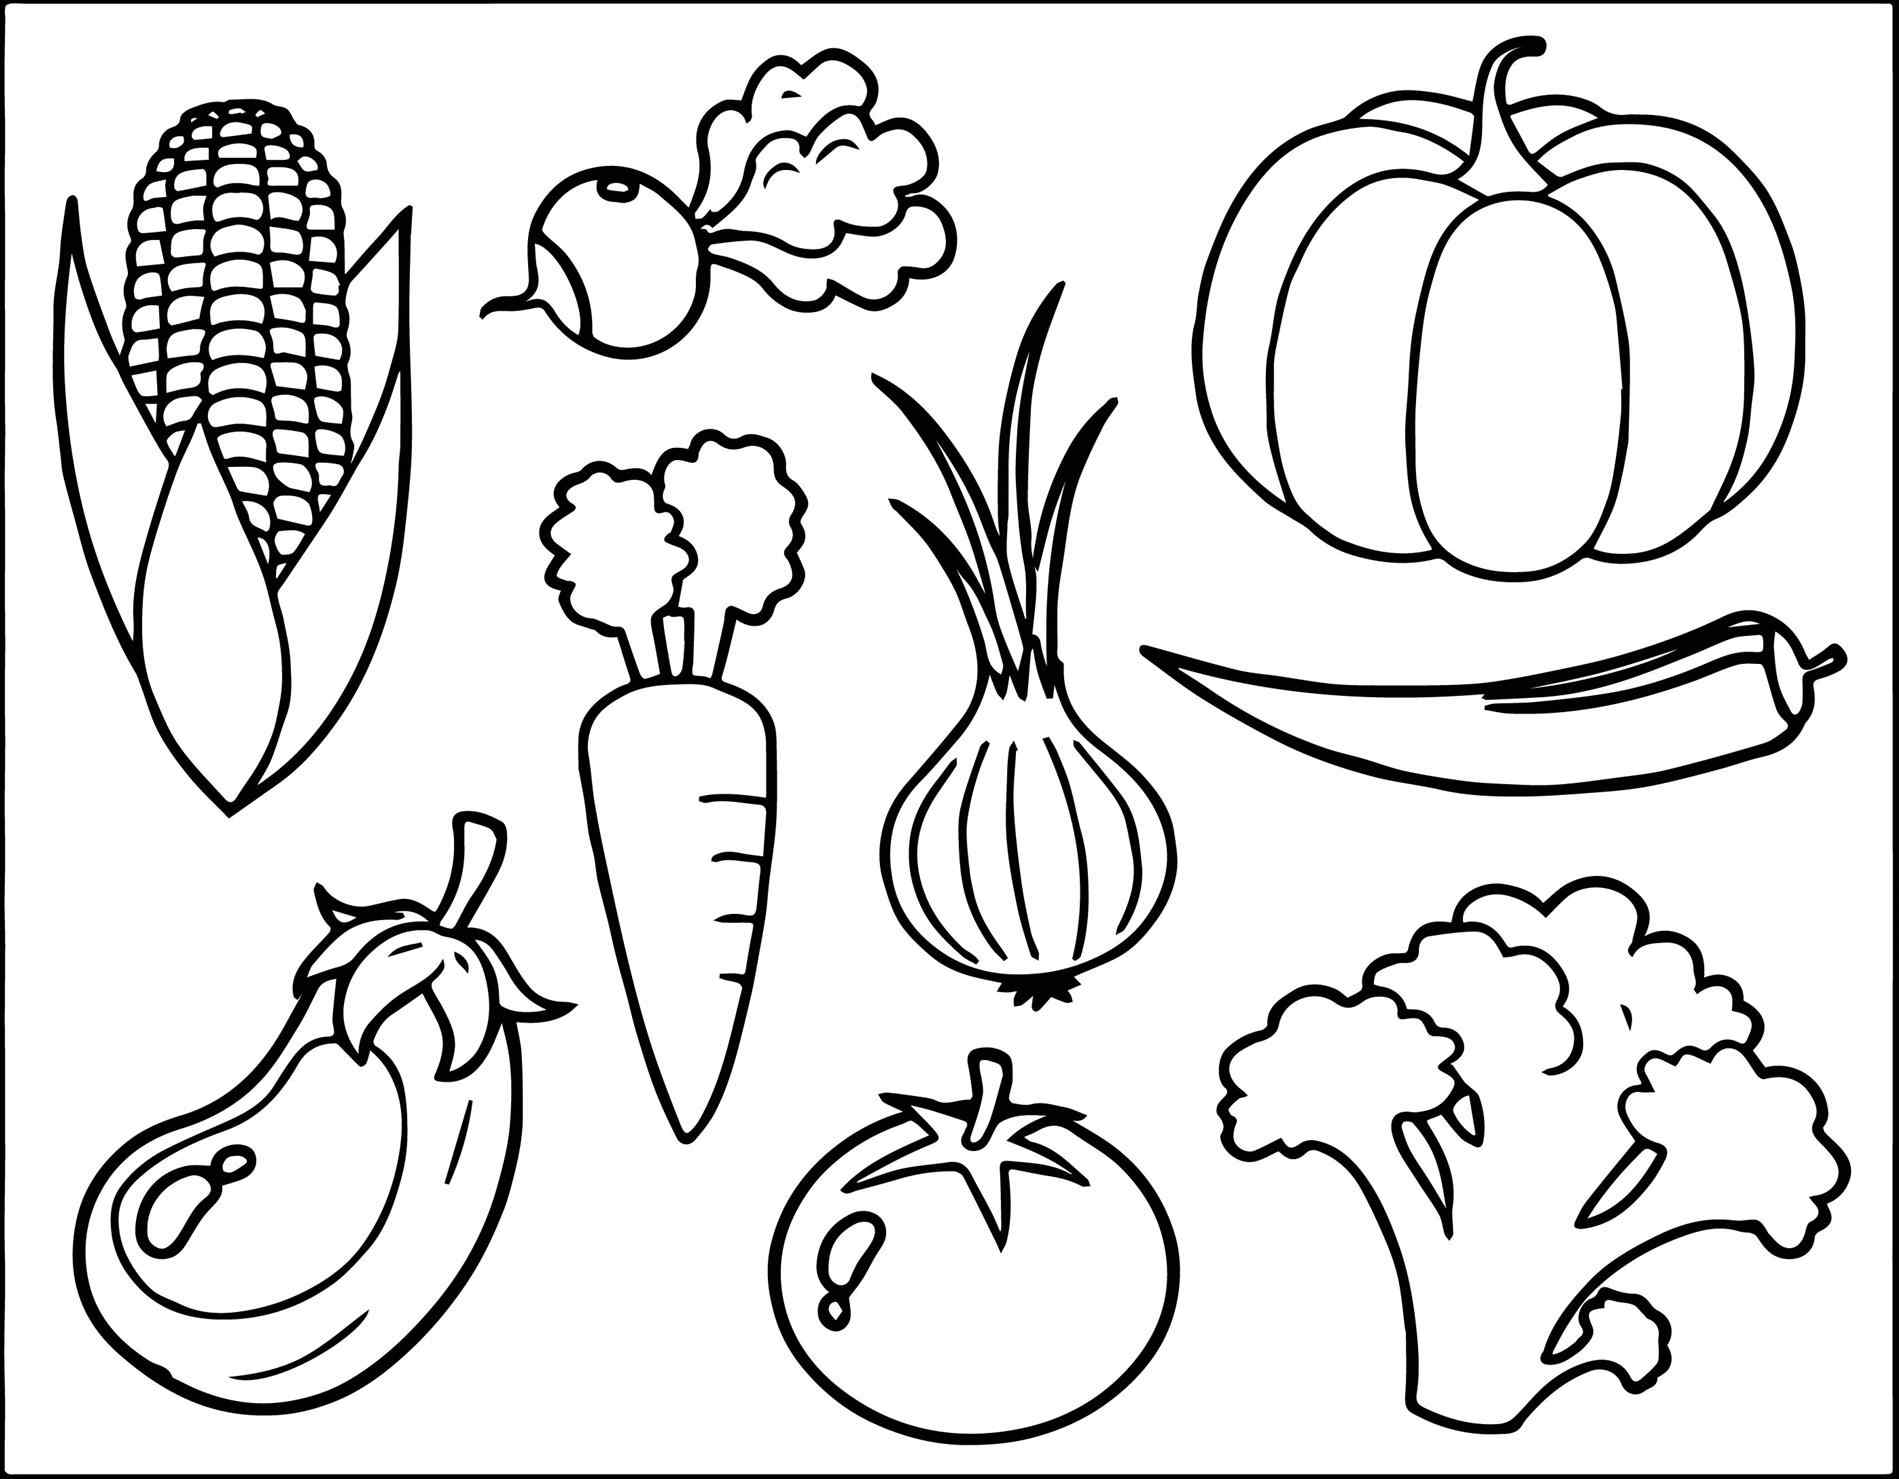 food colouring sheet snacks coloring pages getcoloringpagescom colouring sheet food